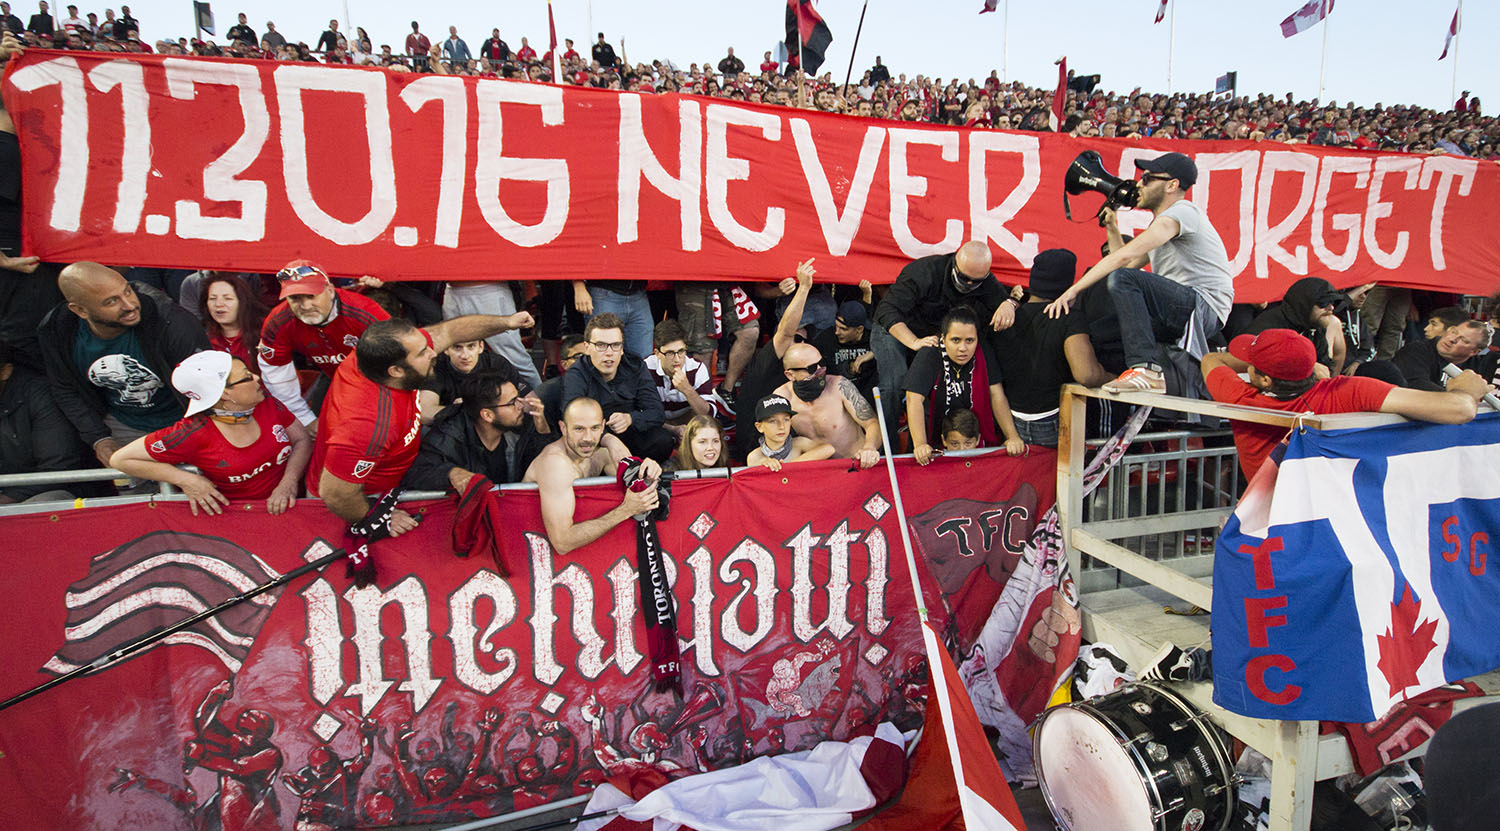 11.30.16 Never Forget a banner in reference to the 2016 MLS Cup semi final shown during the 2017 Canadian Championship by inebriatti and south end supporters.Image by Dennis Marciniak of denMAR Media.